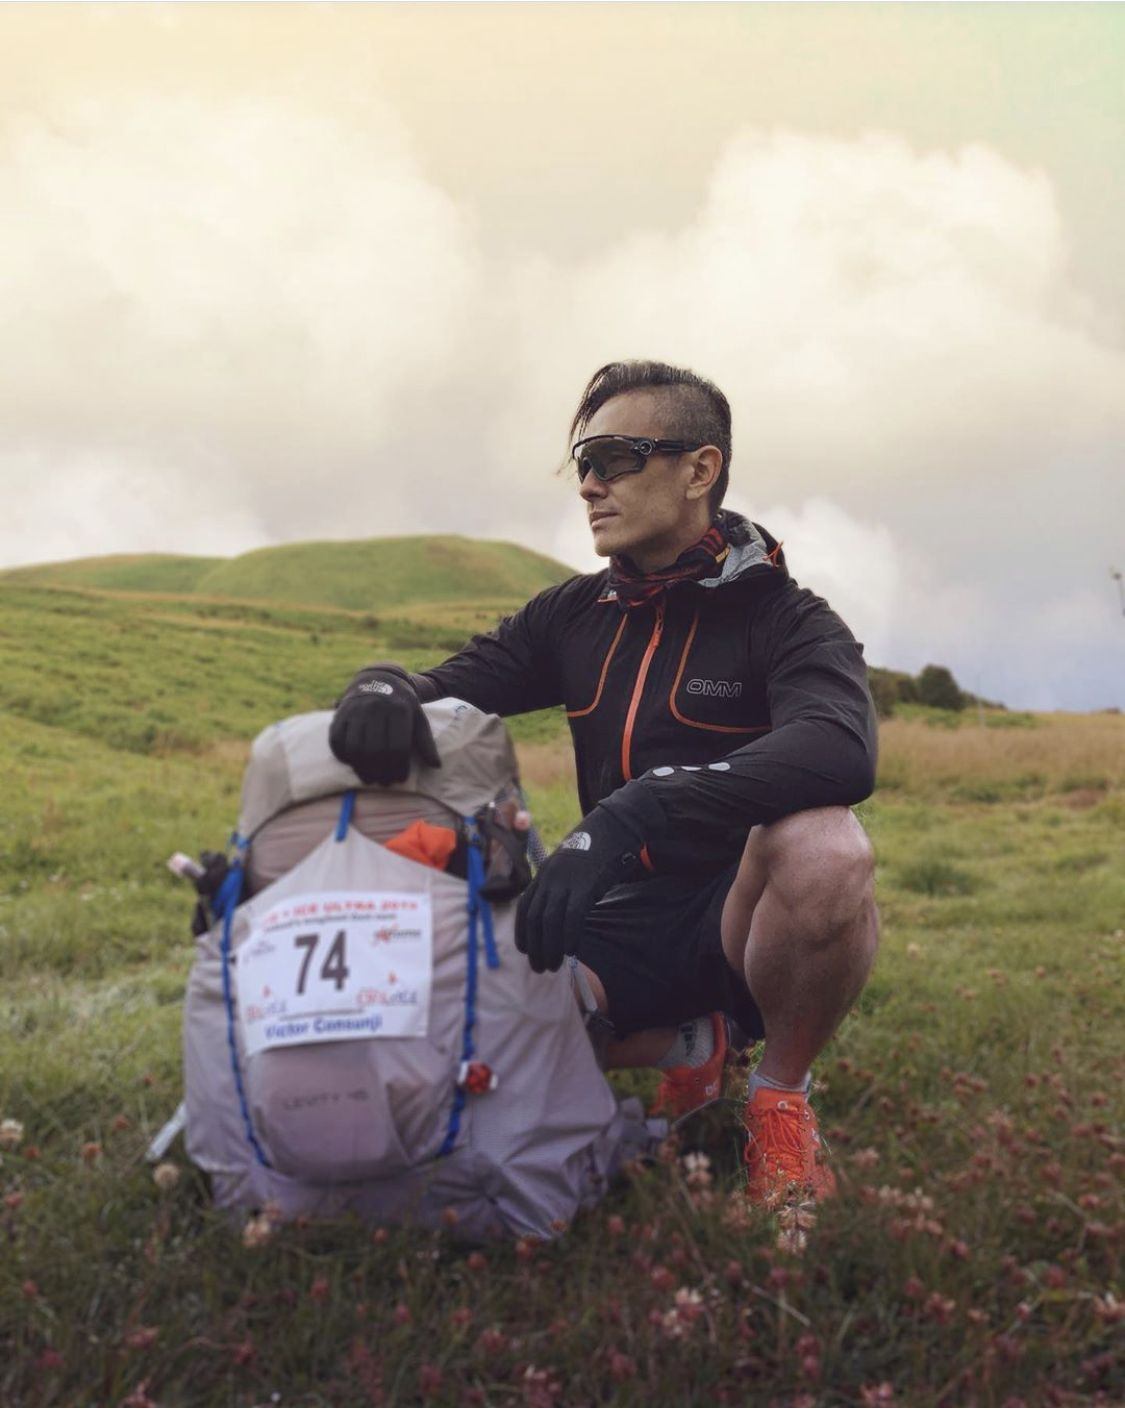 Victor Consunji Conquered Iceland's Tough Terrains To Empower Girl's Dreams